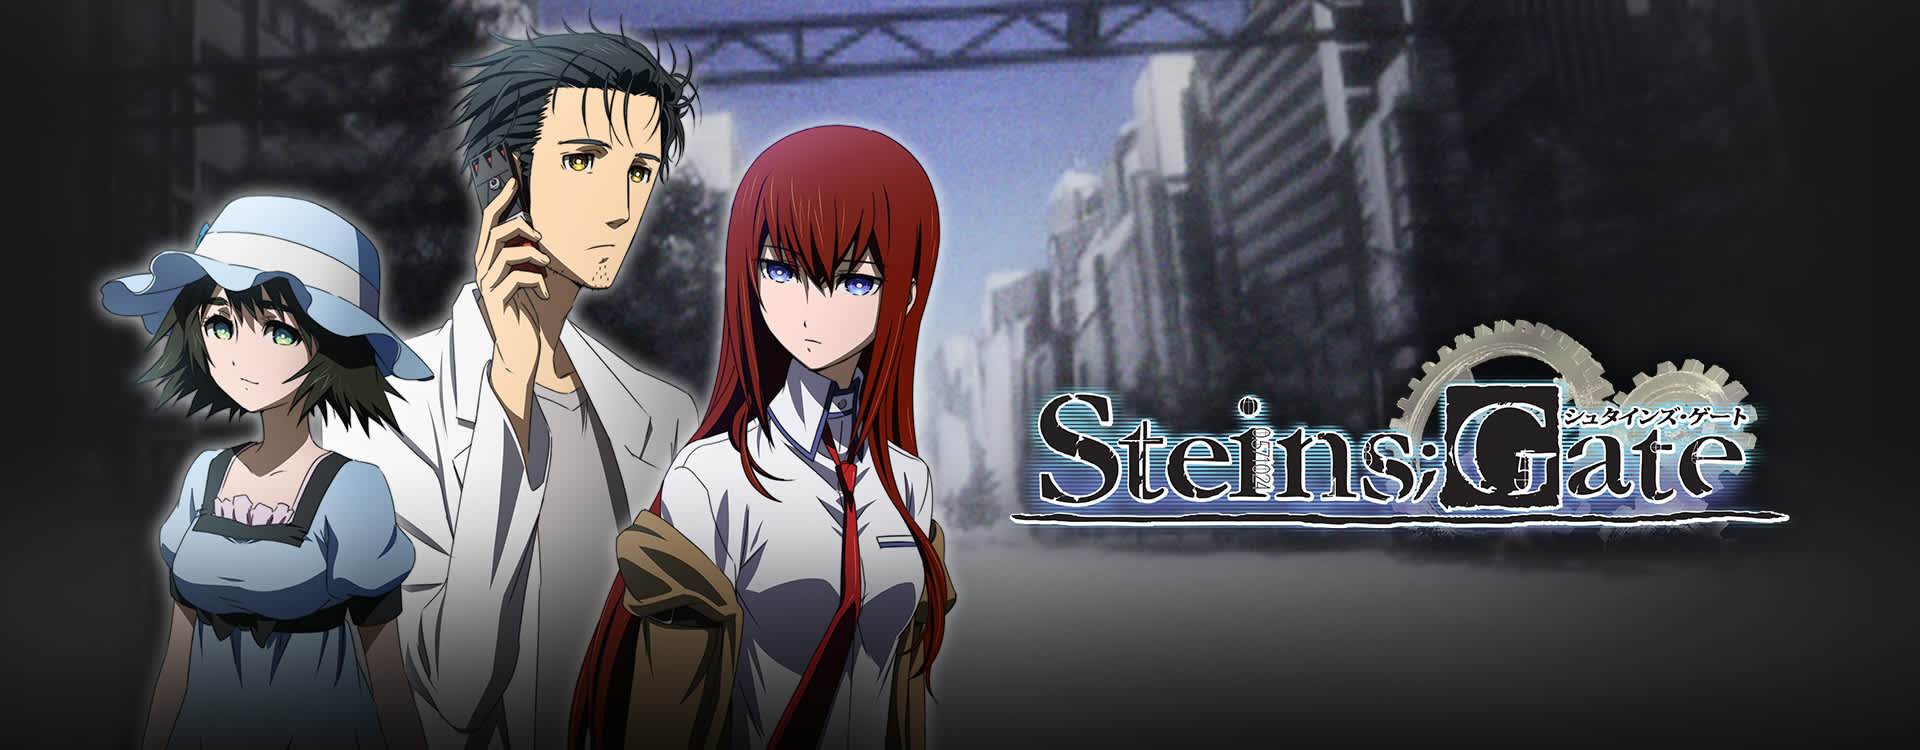 Image result for steins;gate anime